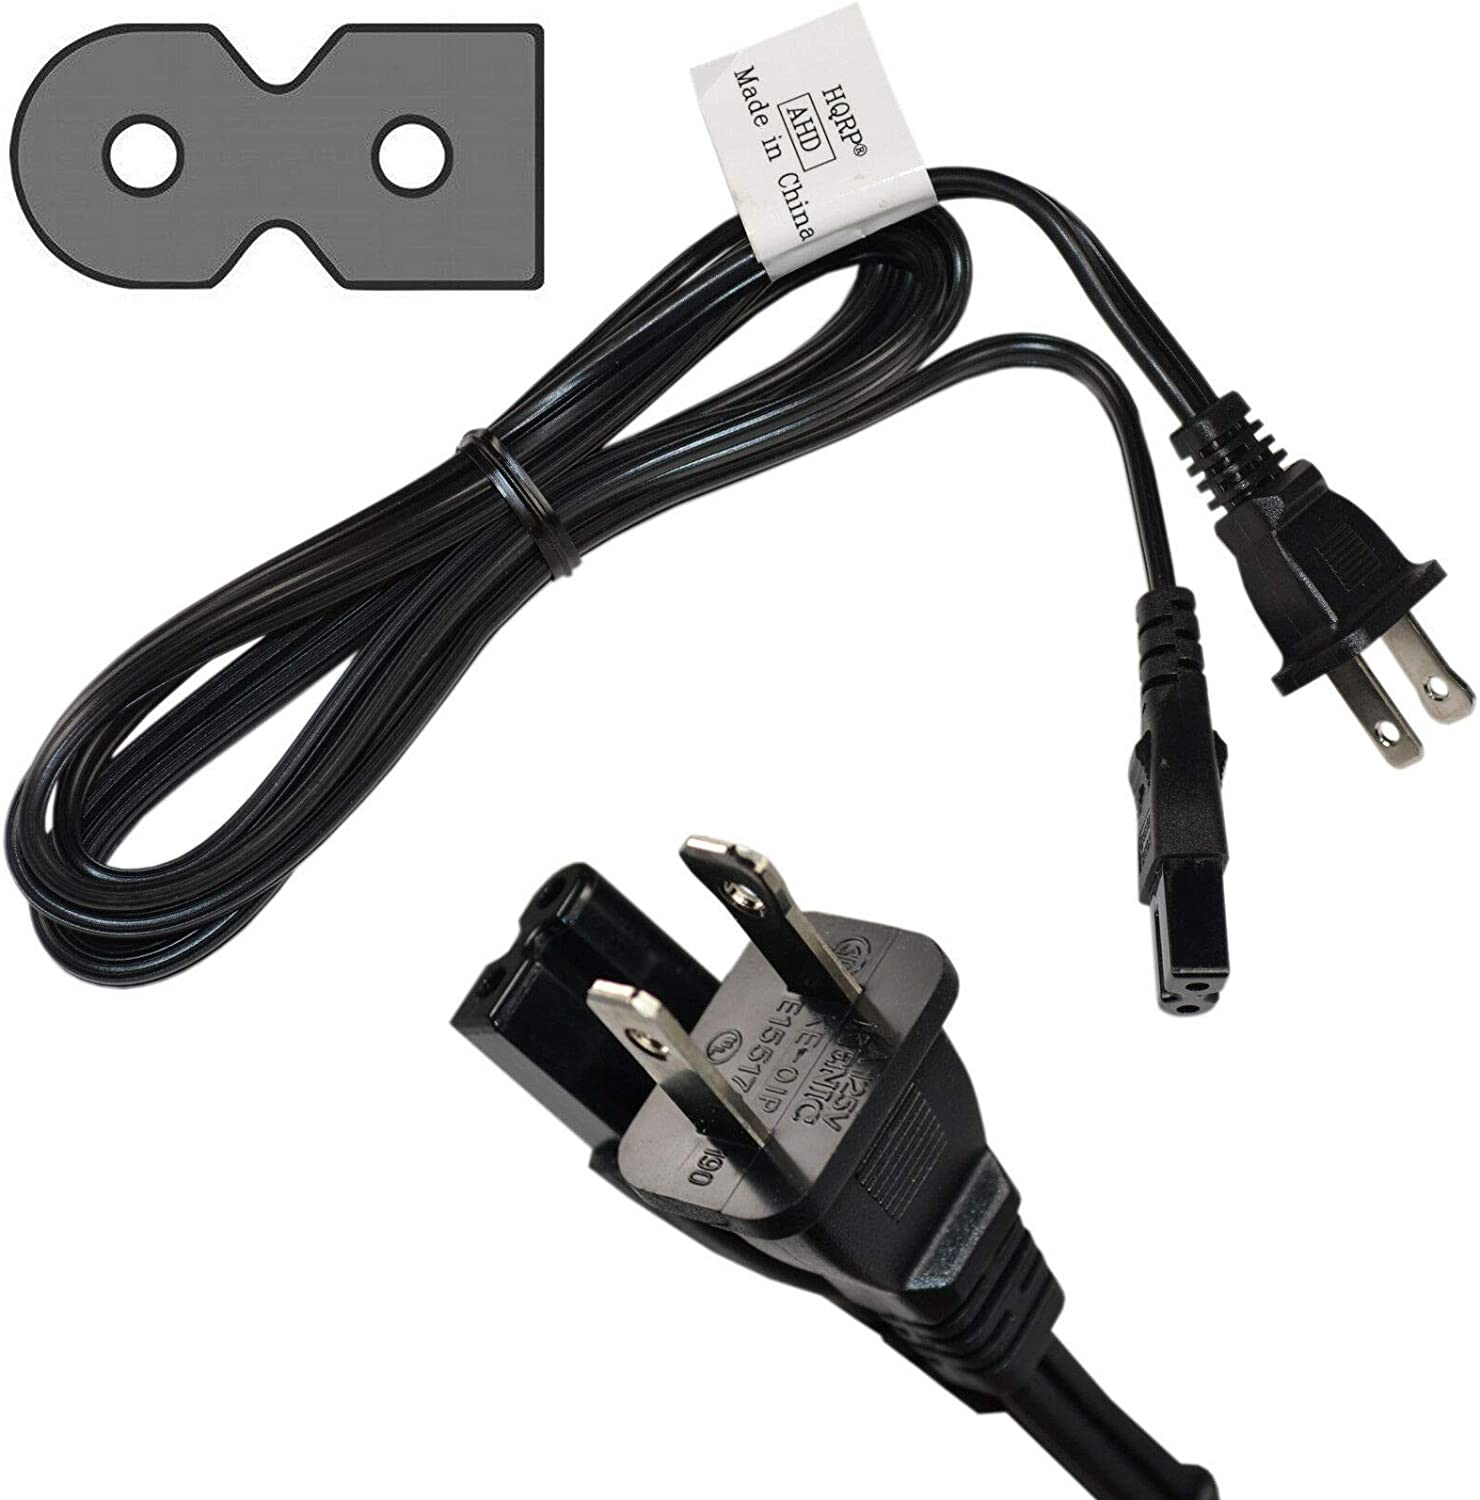 HQRP AC Power Cord fits Panasonic SCHTB20 SCHTB350 SCHTB351 SCHTB65 SCHTB70 Sound Bar Speaker System Mains Cable